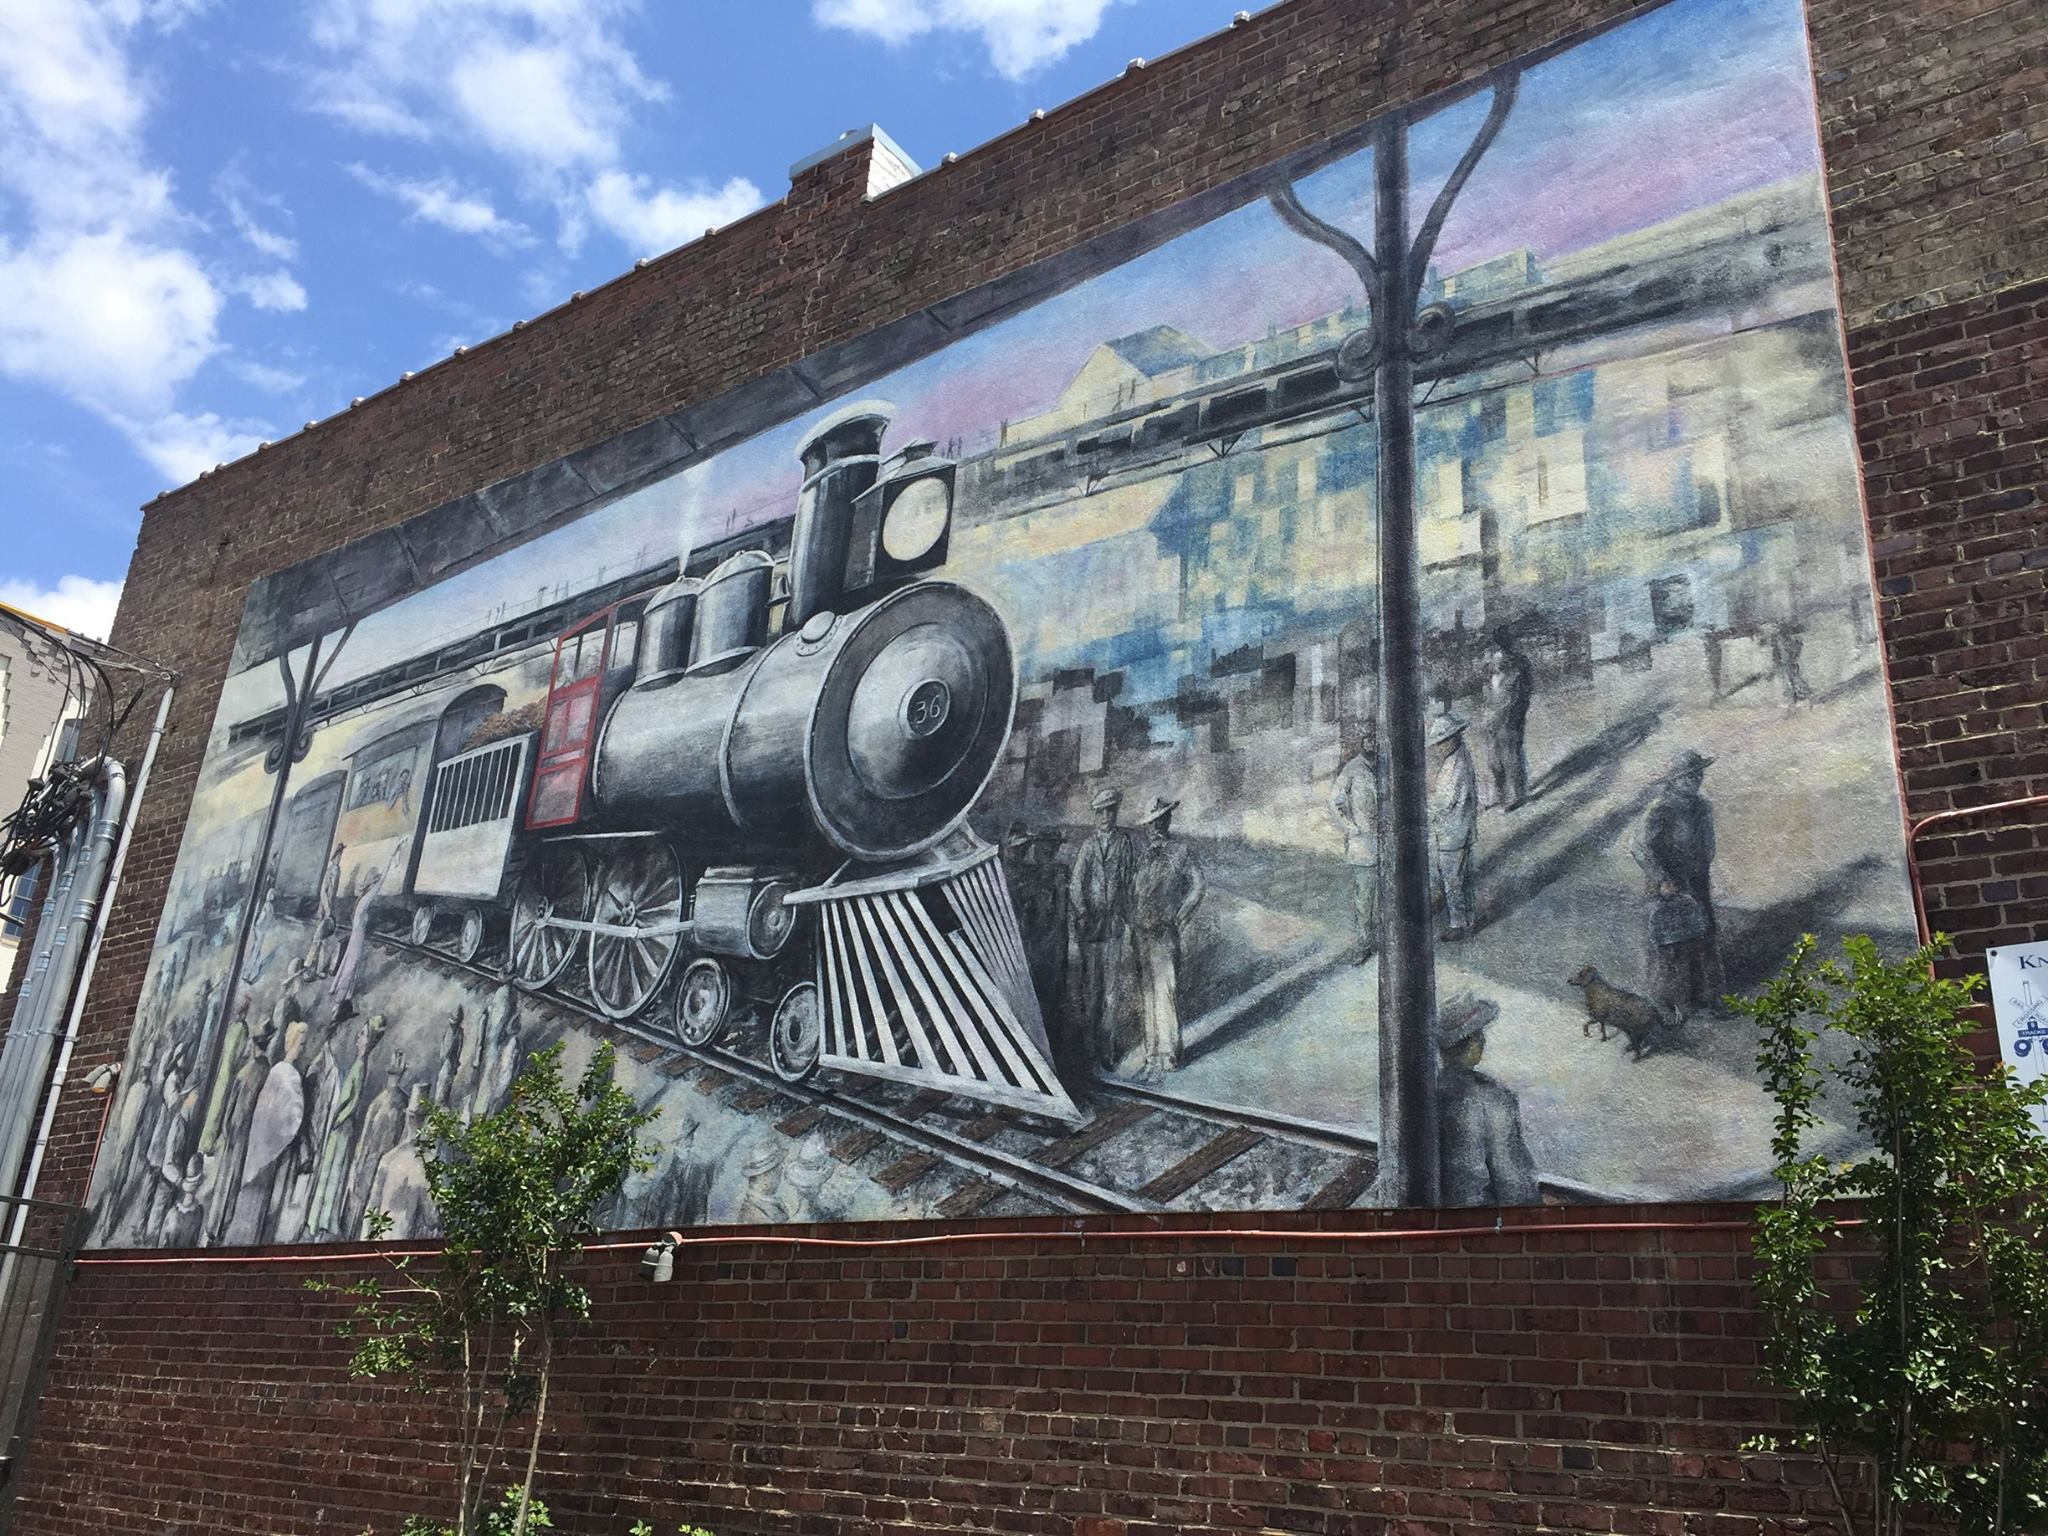 The Knoxville Historic Train Mural   Located at 100 North Central Street, in the Lonesome Dove/Love Shack restaurant courtyard. The mural was first completed in 2002 and later restored in 2017 by artist Walt Fieldsa.